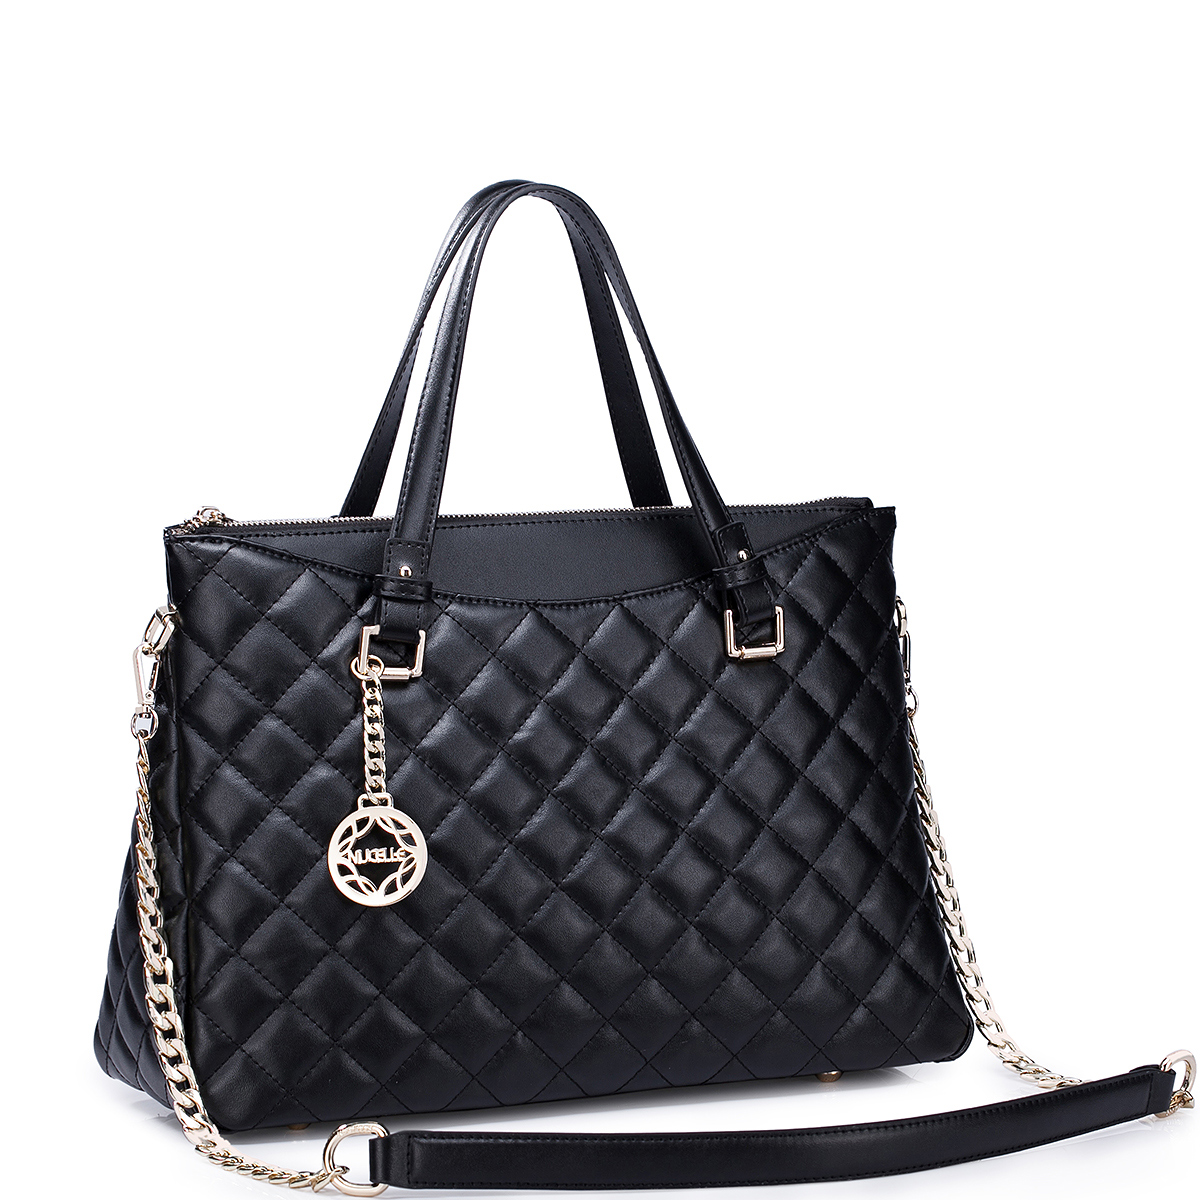 Luxury 2015 New Fashion Women Leather Handbag Tote Shoulder Bag Large Black